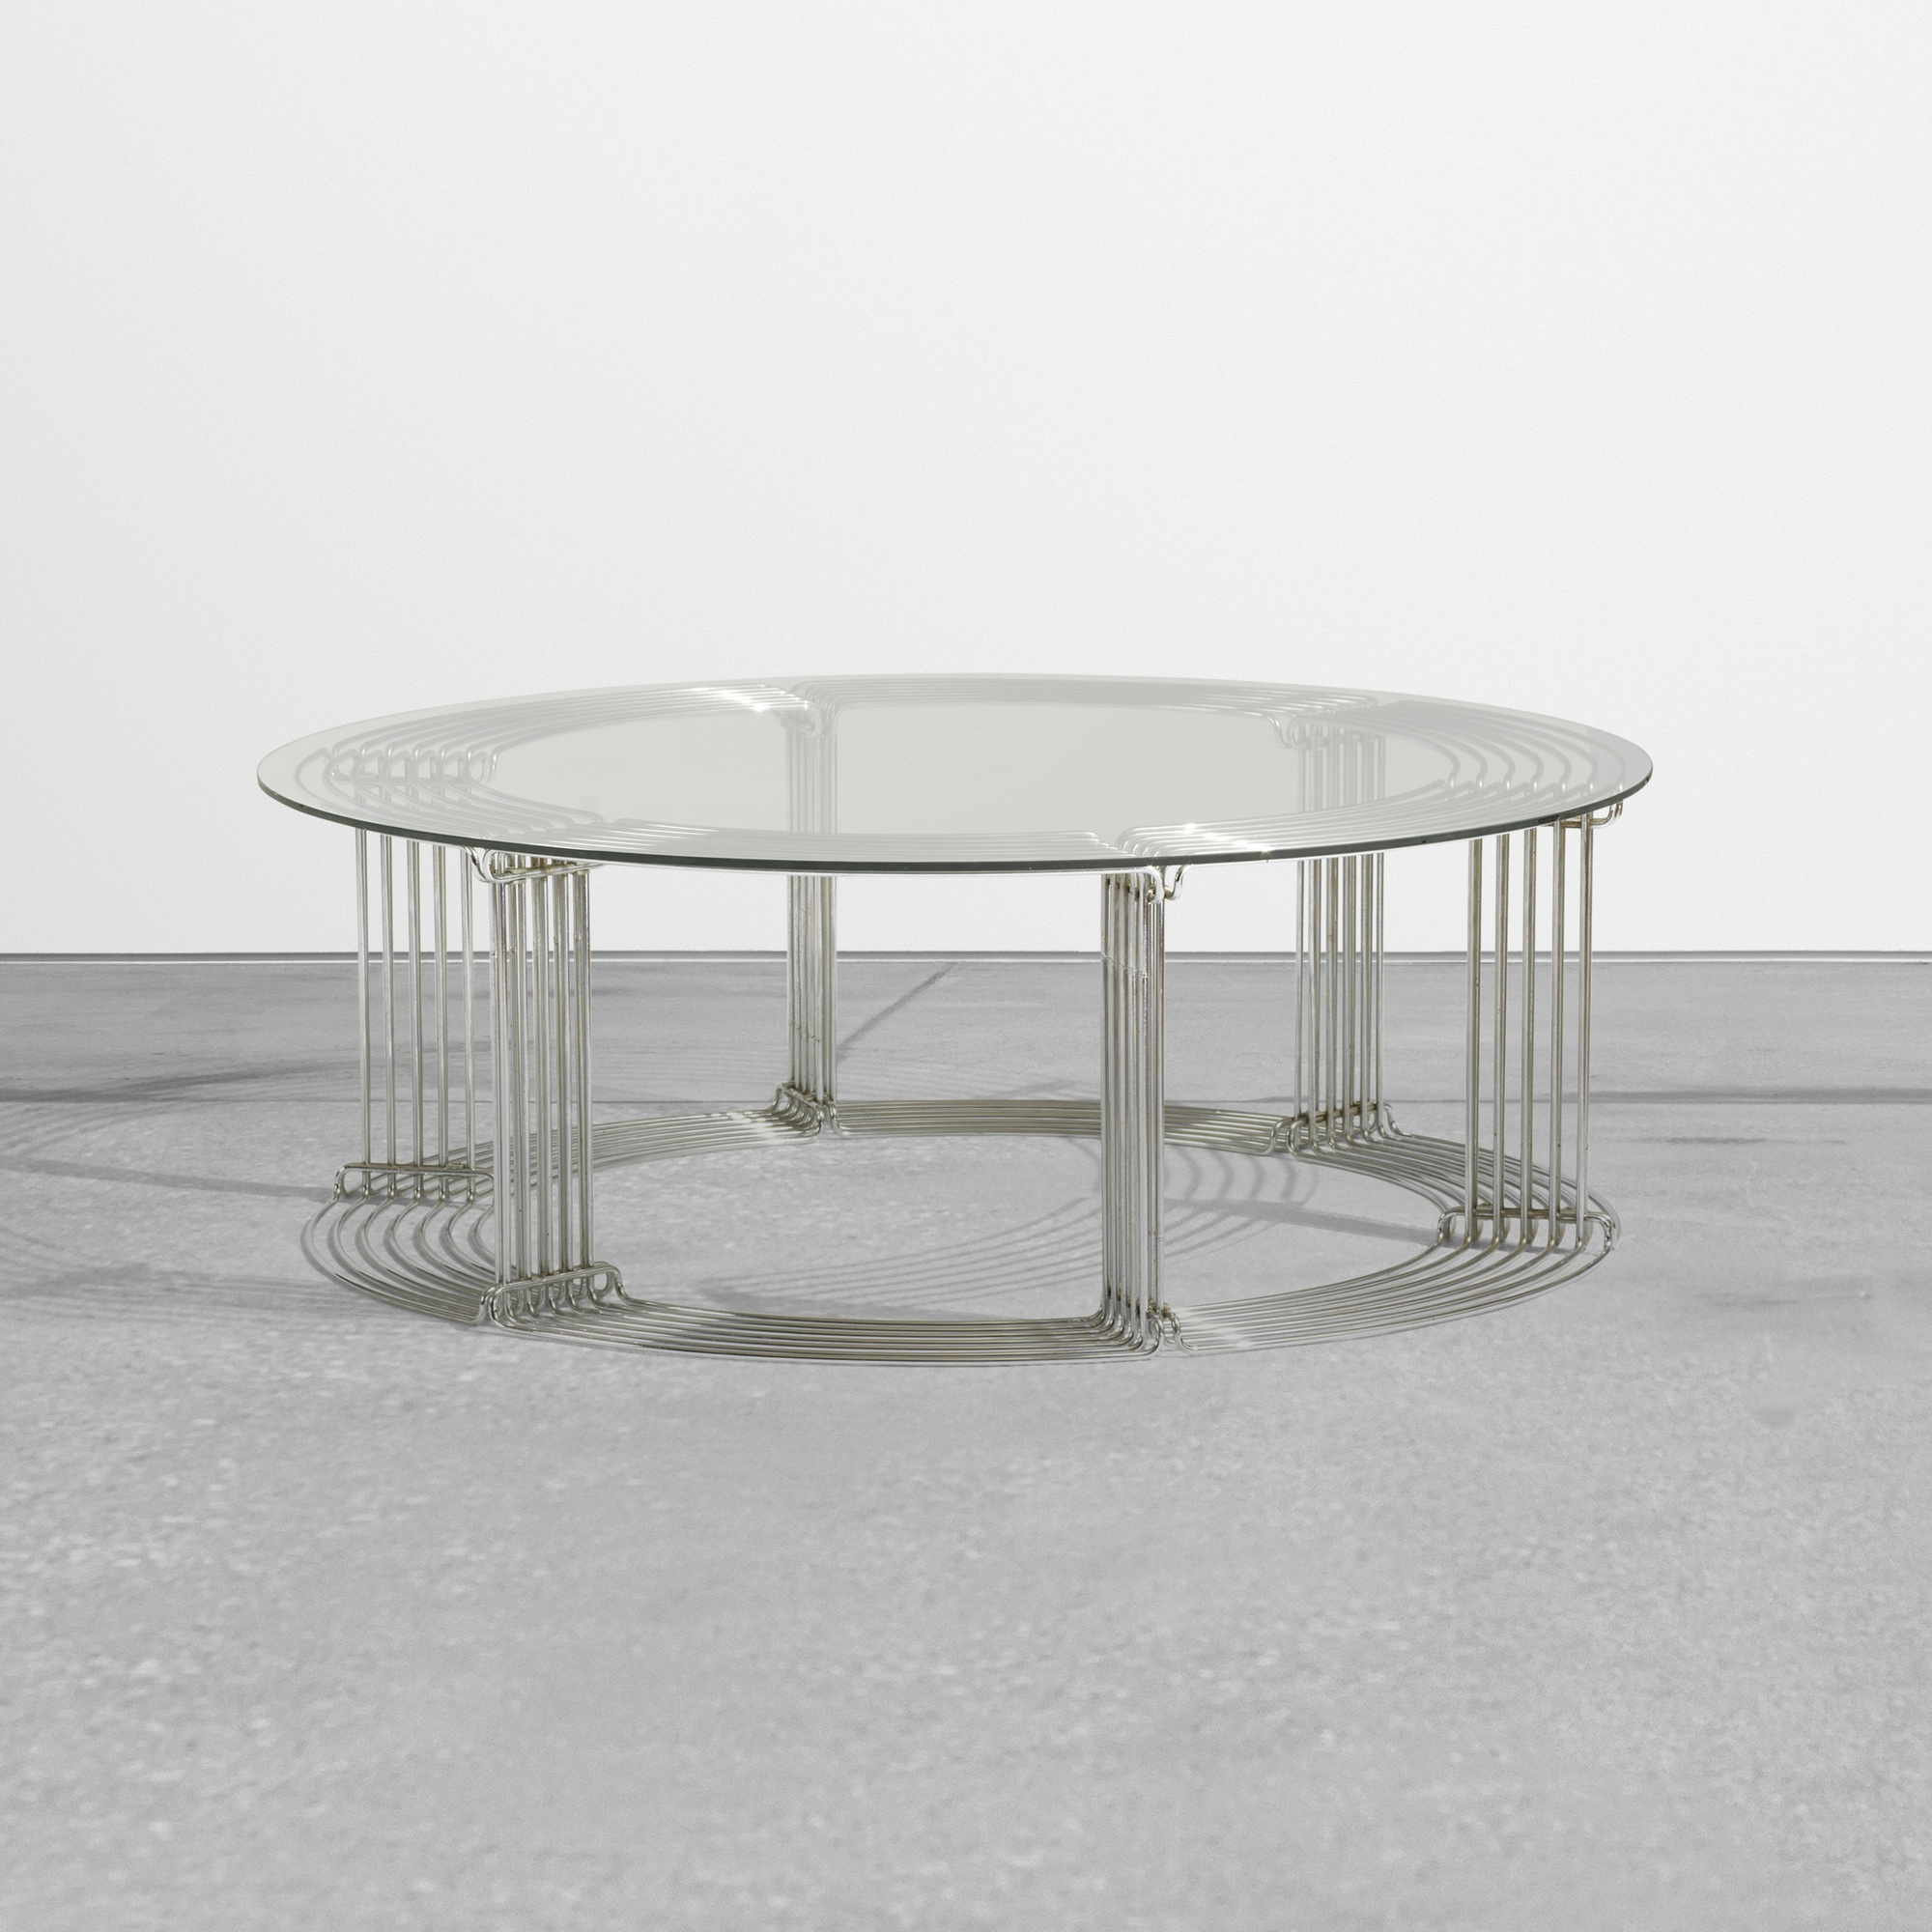 268: Verner Panton / Pantonova coffee table, model 121U (1 of 1)